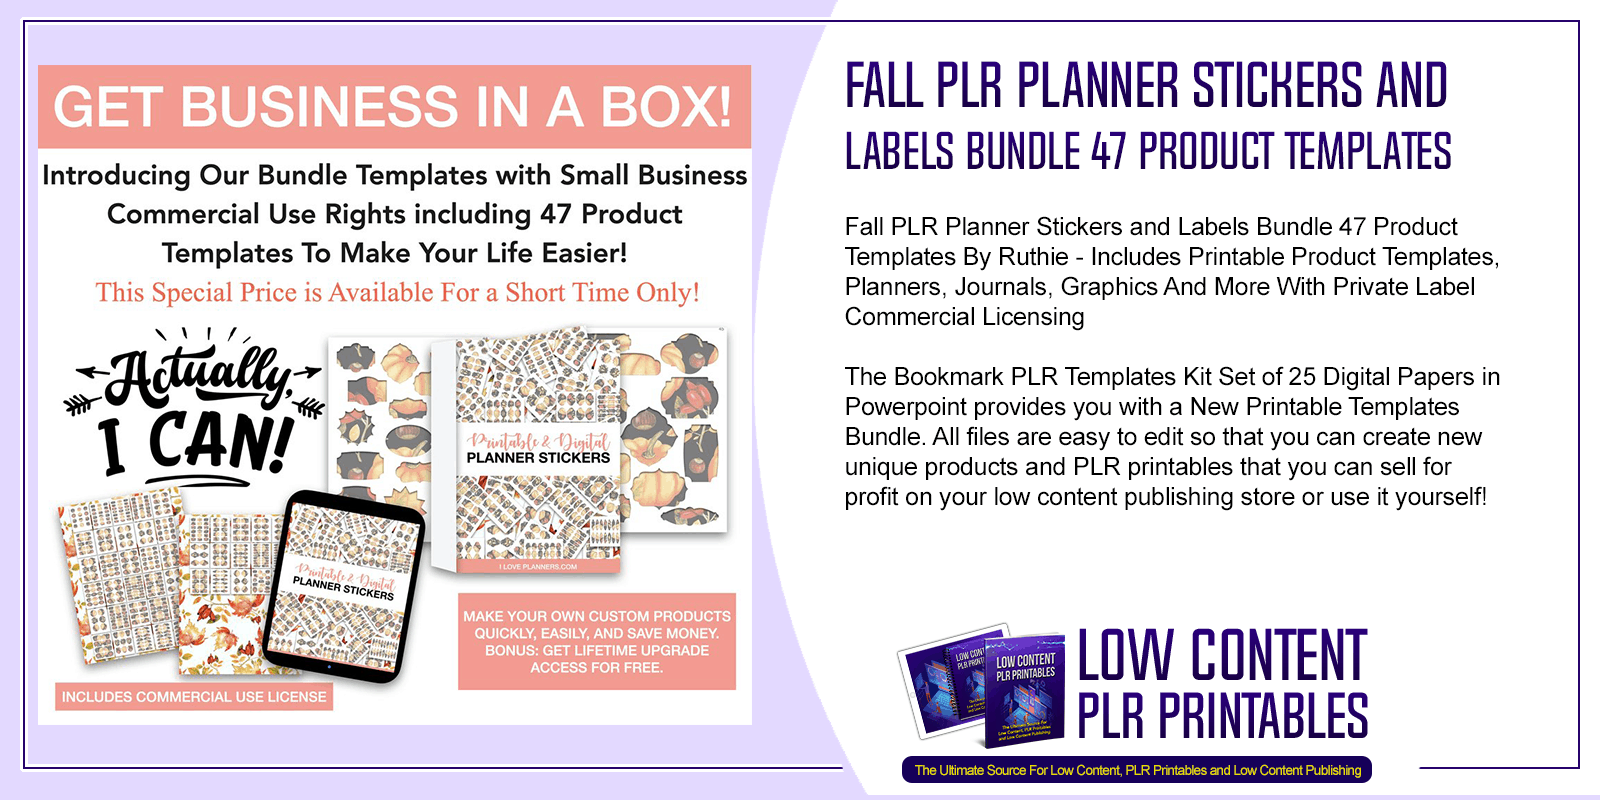 Fall PLR Planner Stickers and Labels Bundle 47 Product Templates